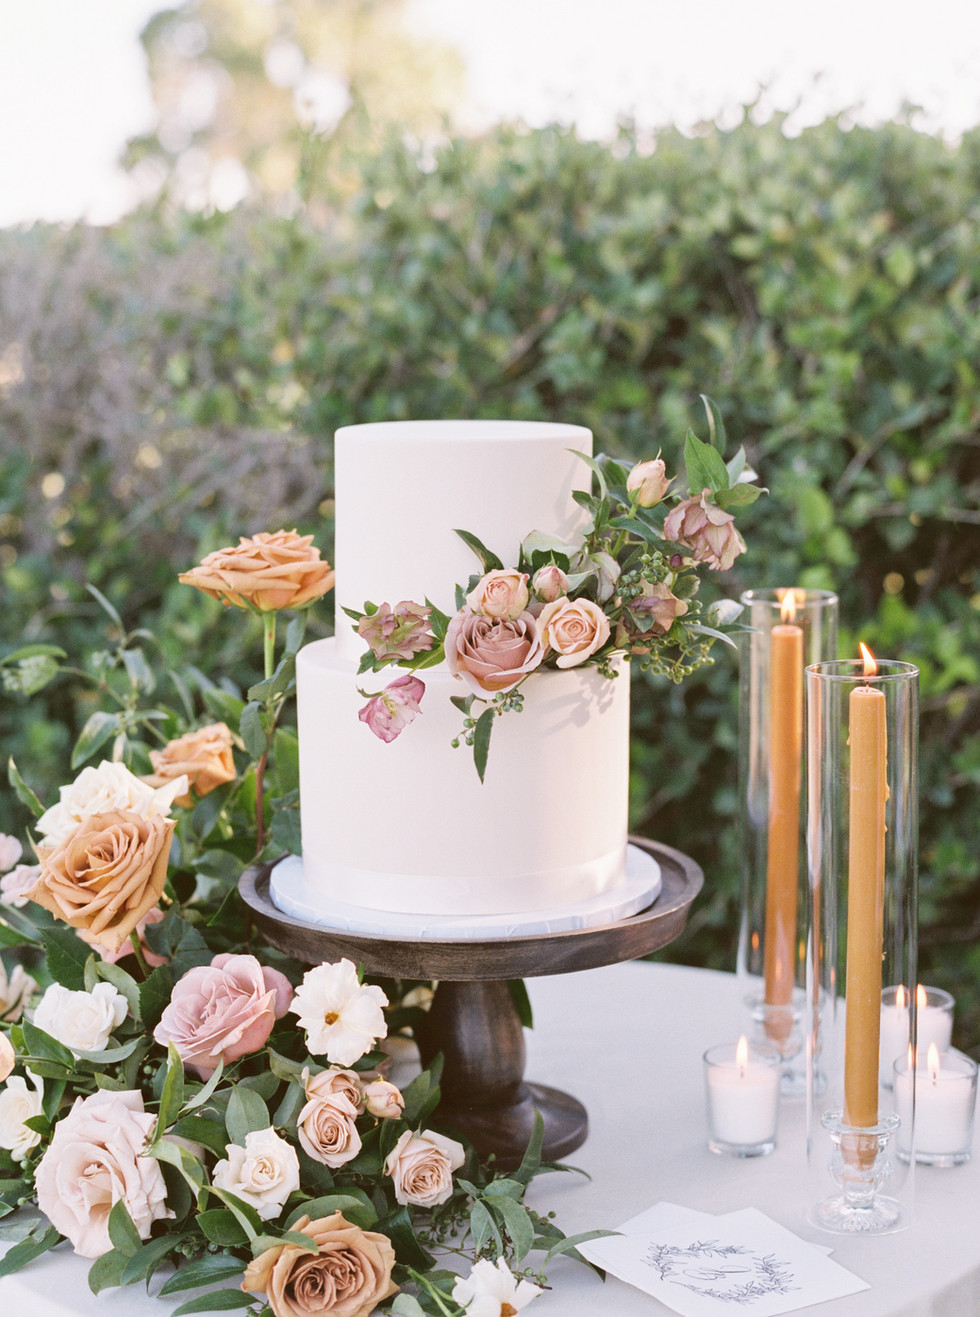 Toffee and dusty rose floral arrangement and cake floral with toffee colored taper candles. Photo: Lianna Marie